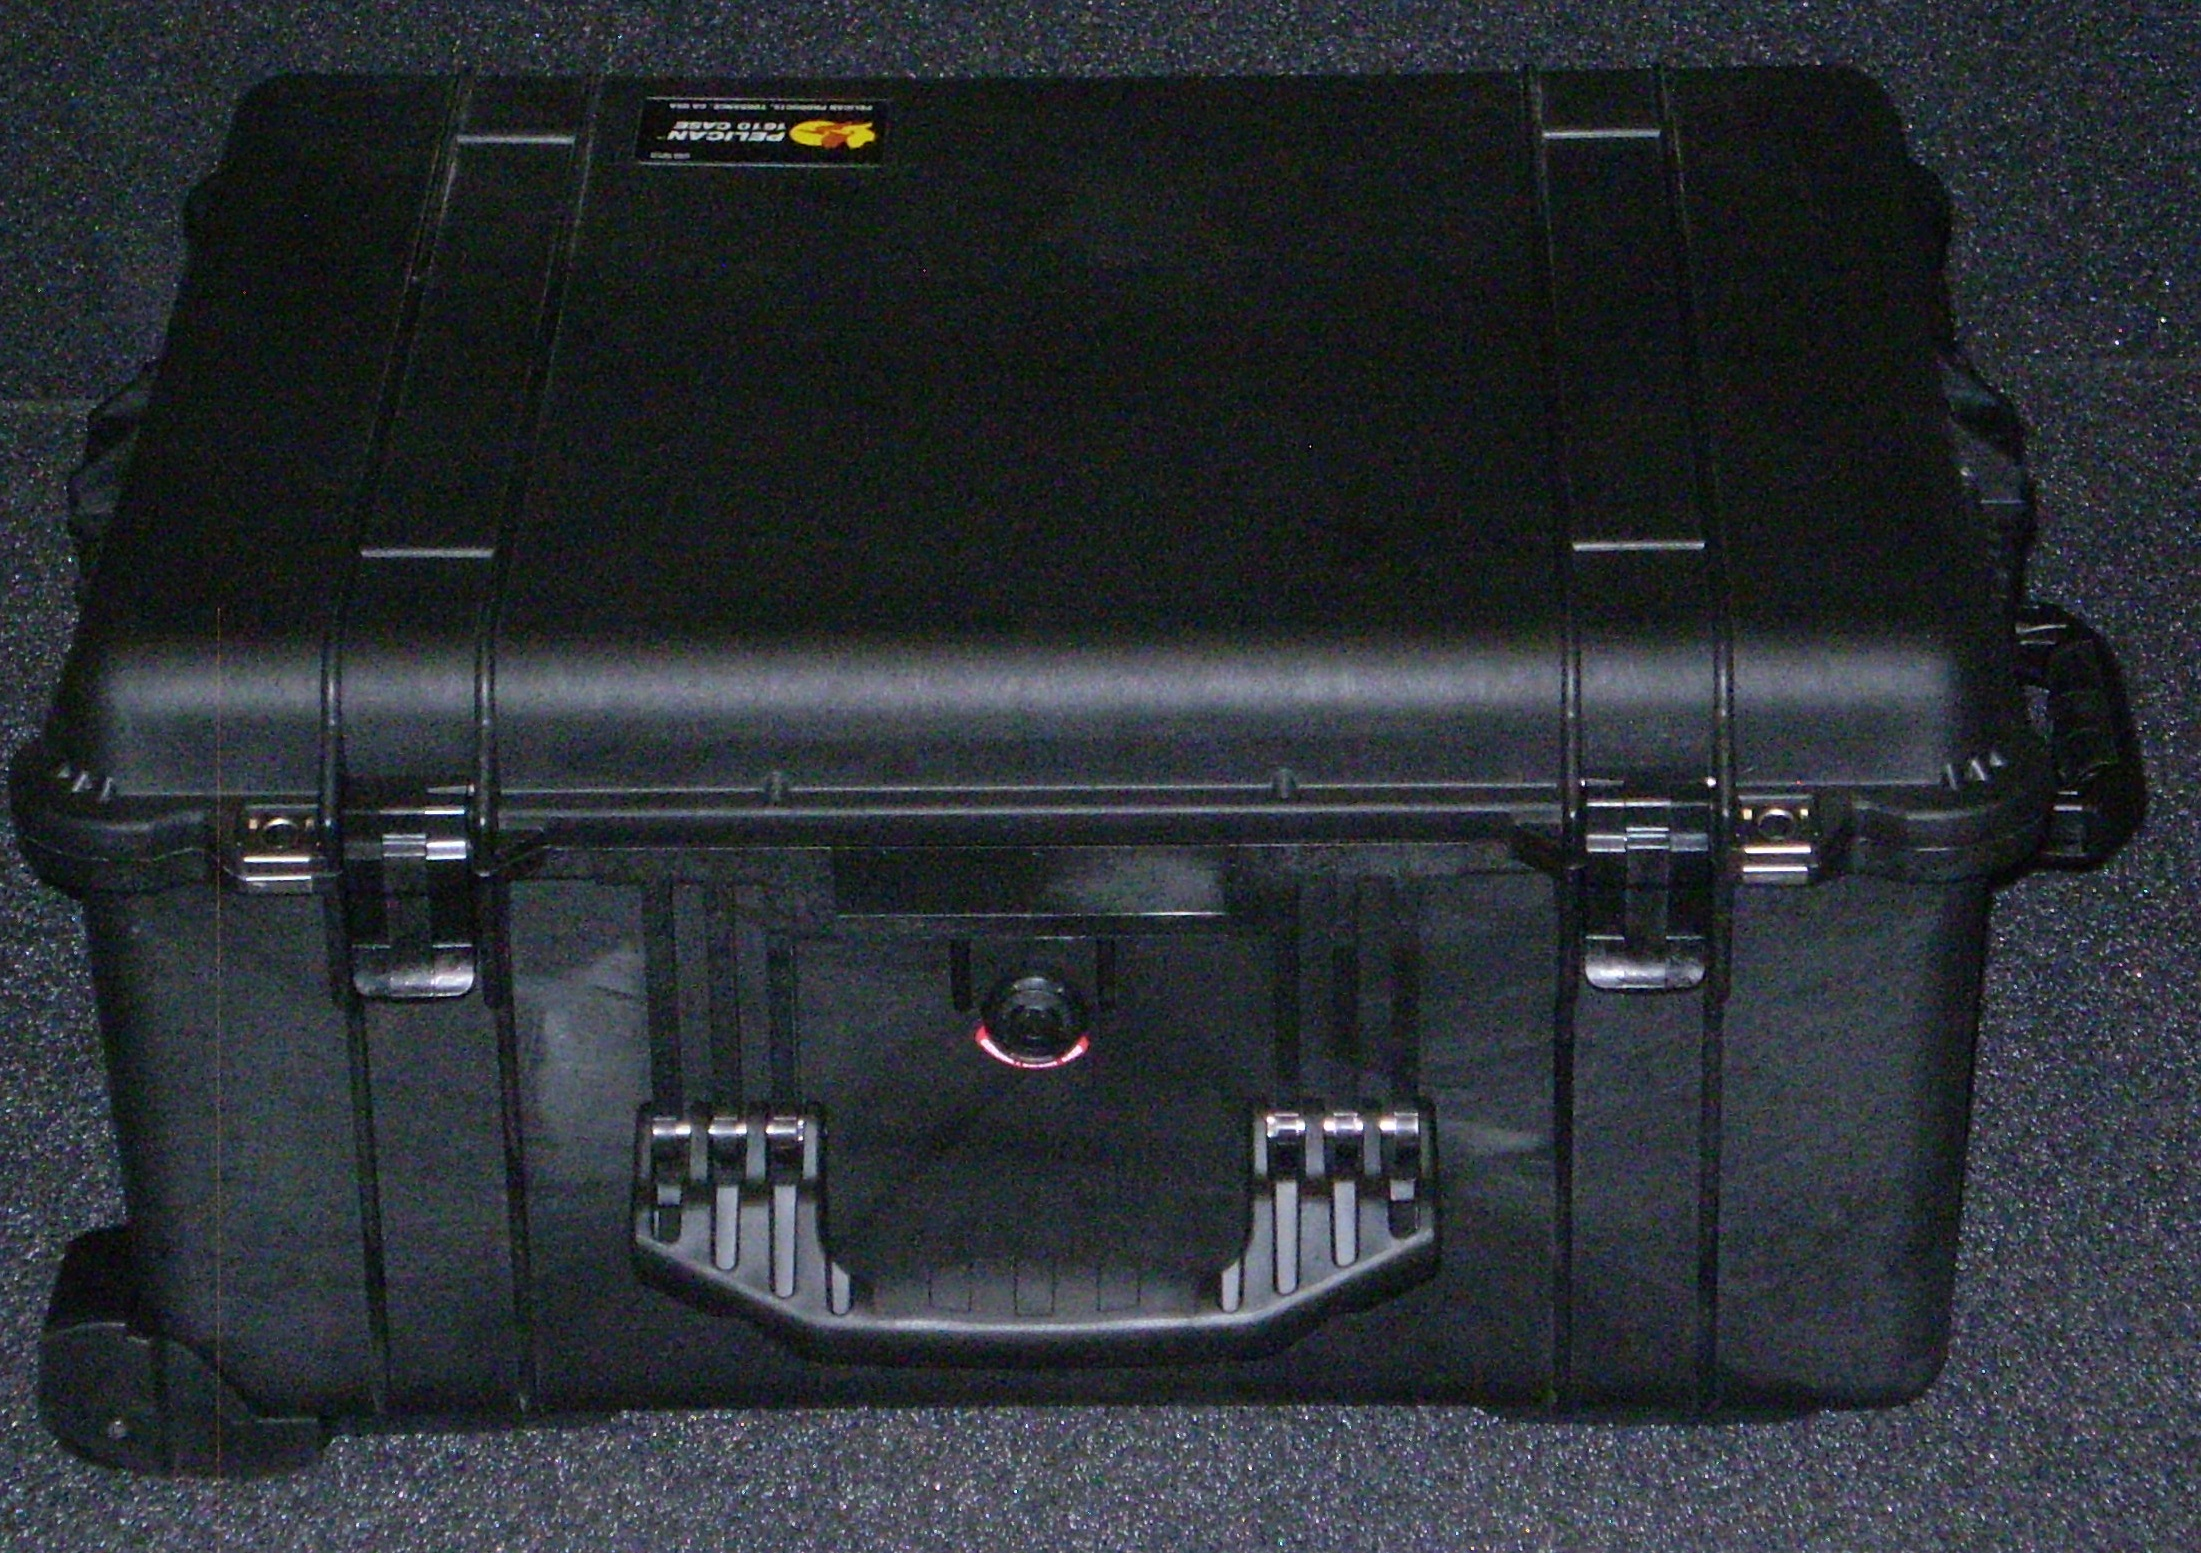 Print # 6188 - Custom Foam Insert and Pelican 1610 Case to hold (2)Power Supplies, (2)Thinklogical Velocity DVI, Reel GT 310RM and, (1) Accessories Compartment By Nelson Case Corp